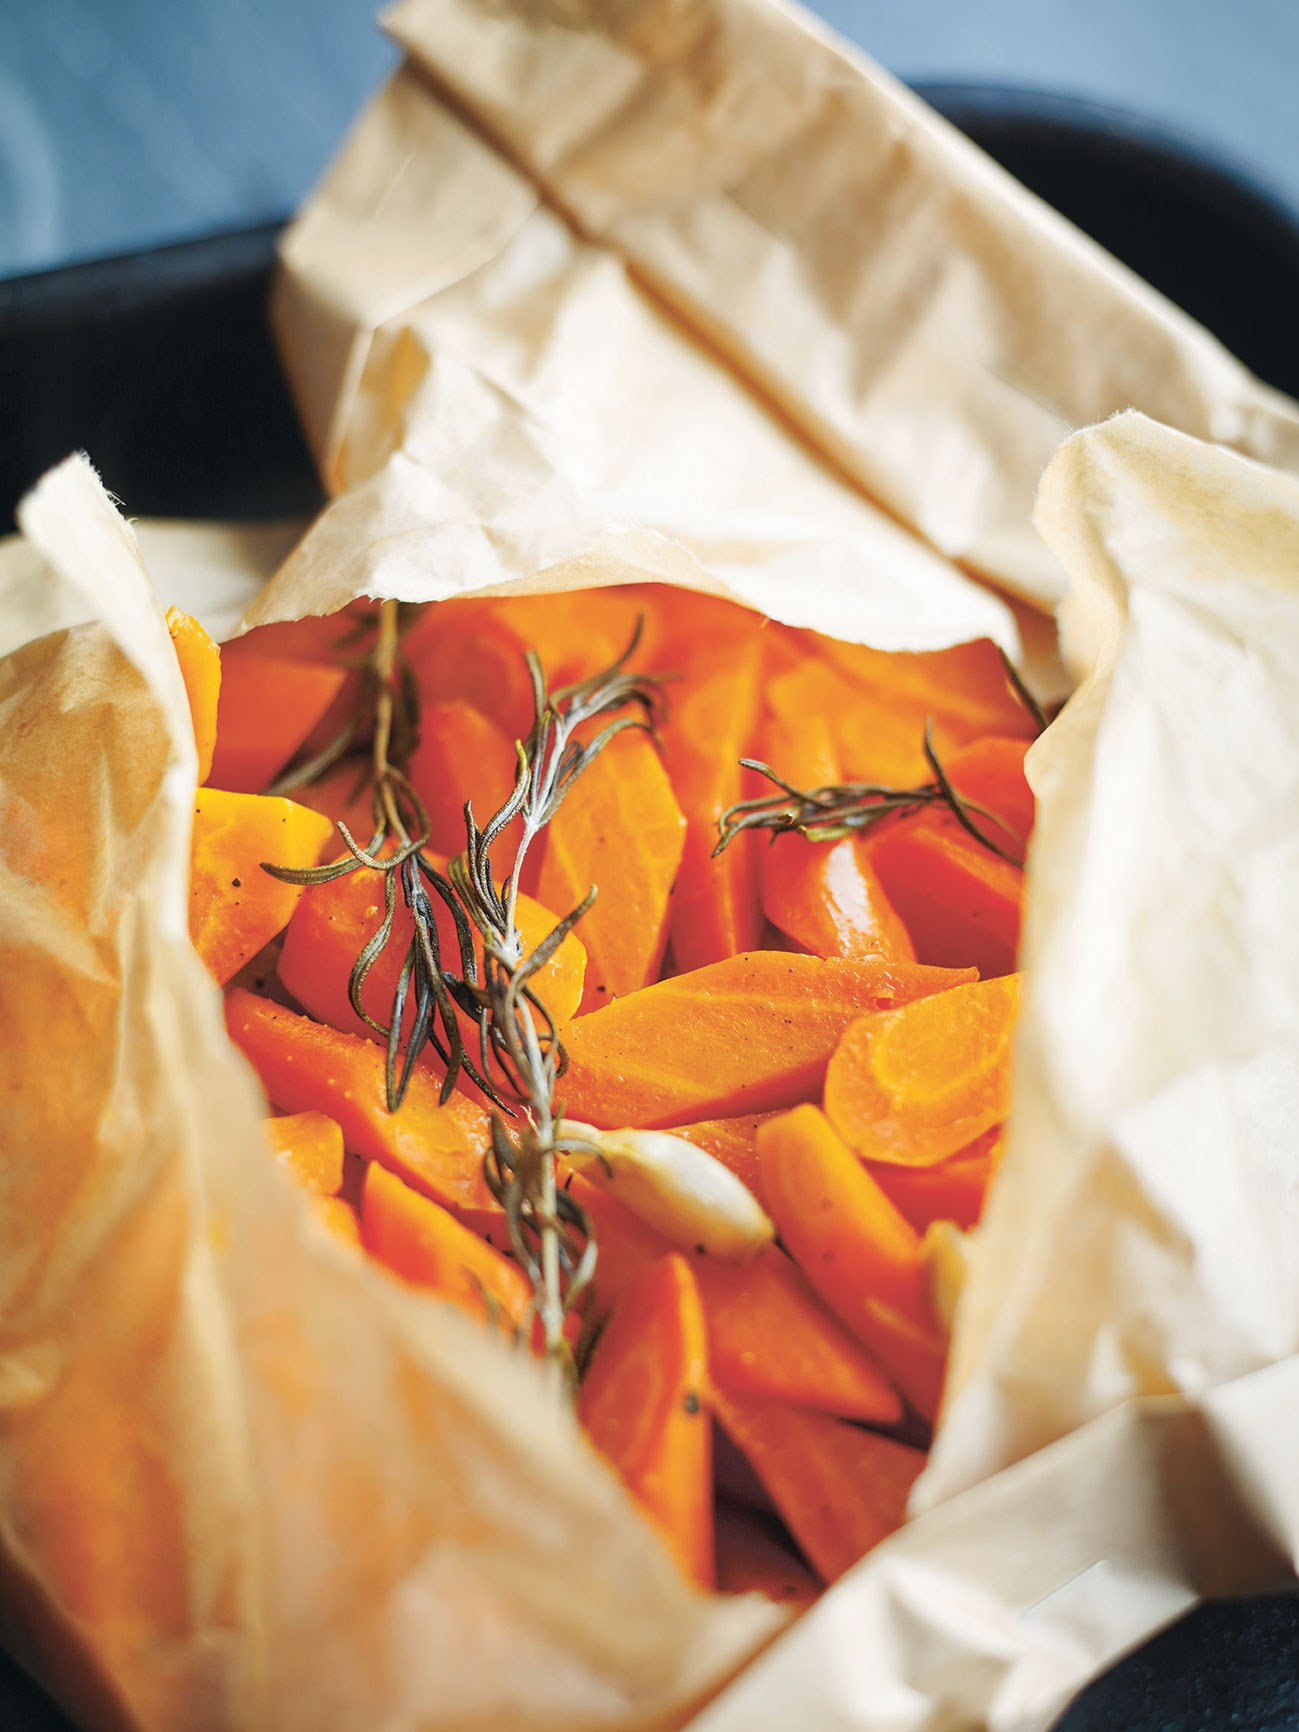 Carrots In A Bag